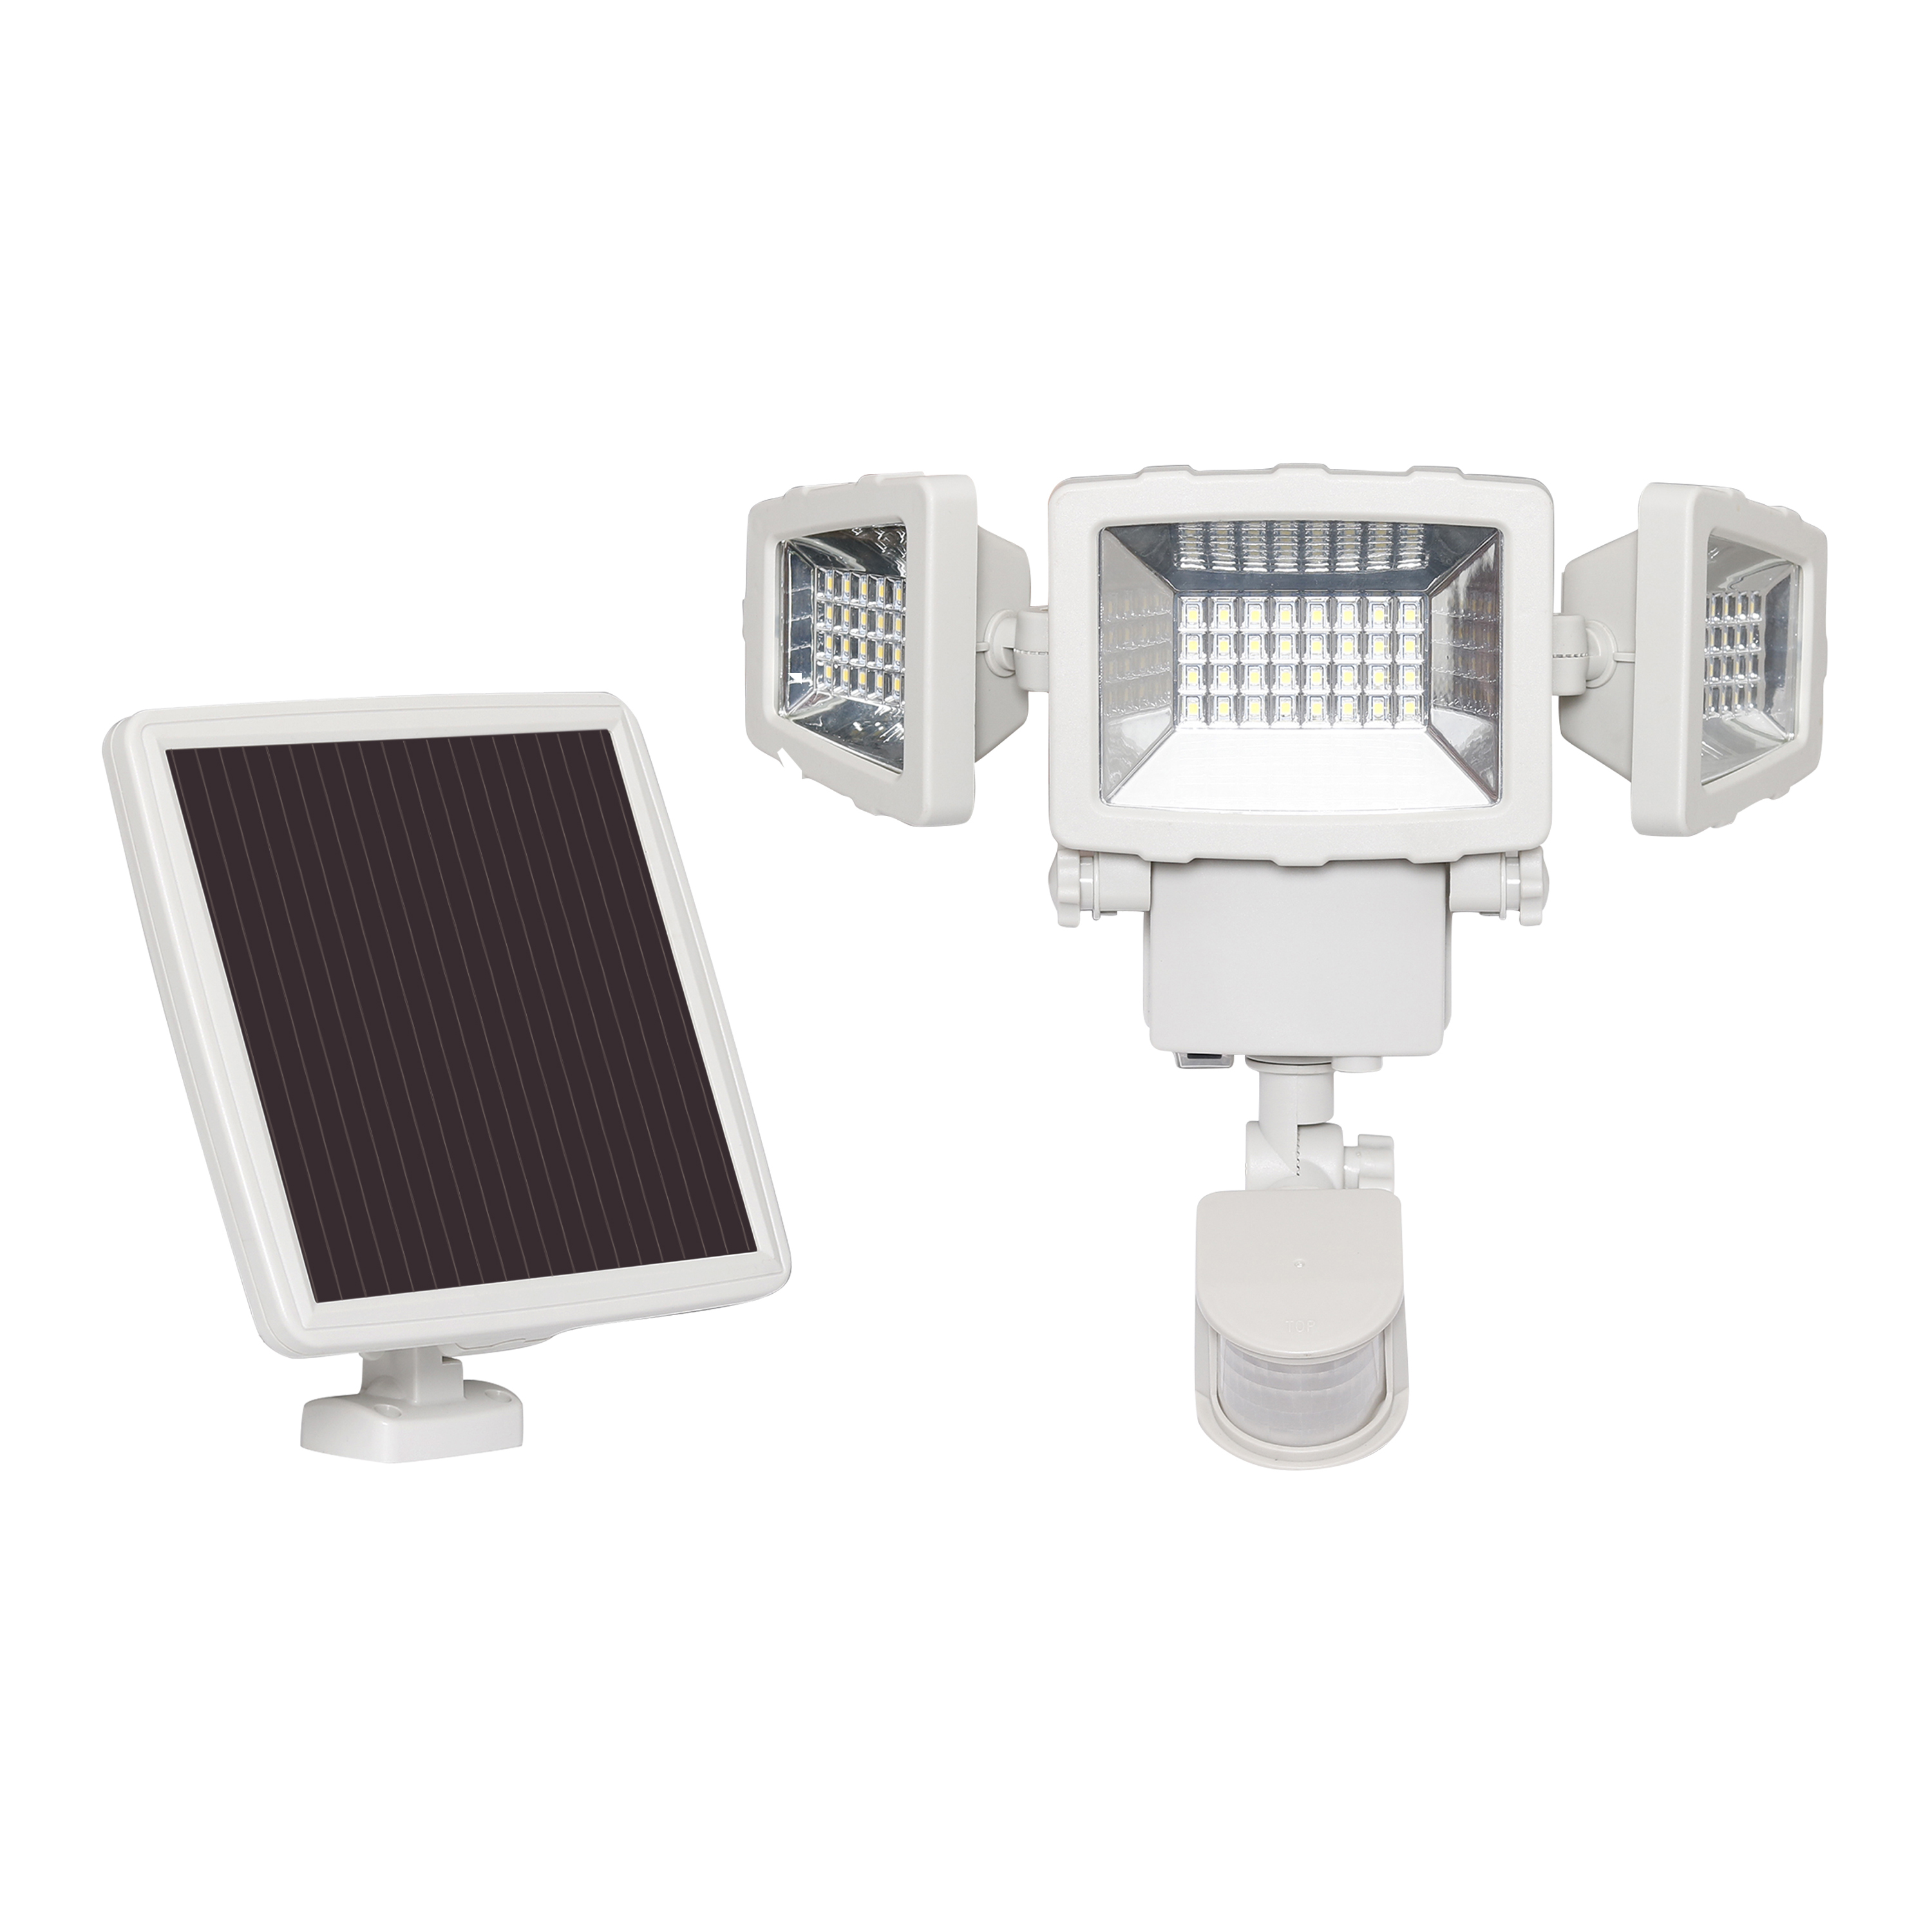 Westinghouse 1500 Lumen Triple Head Solar Security Light Motion Activated by Quanxin Lighting & Electrical Corporation Limited